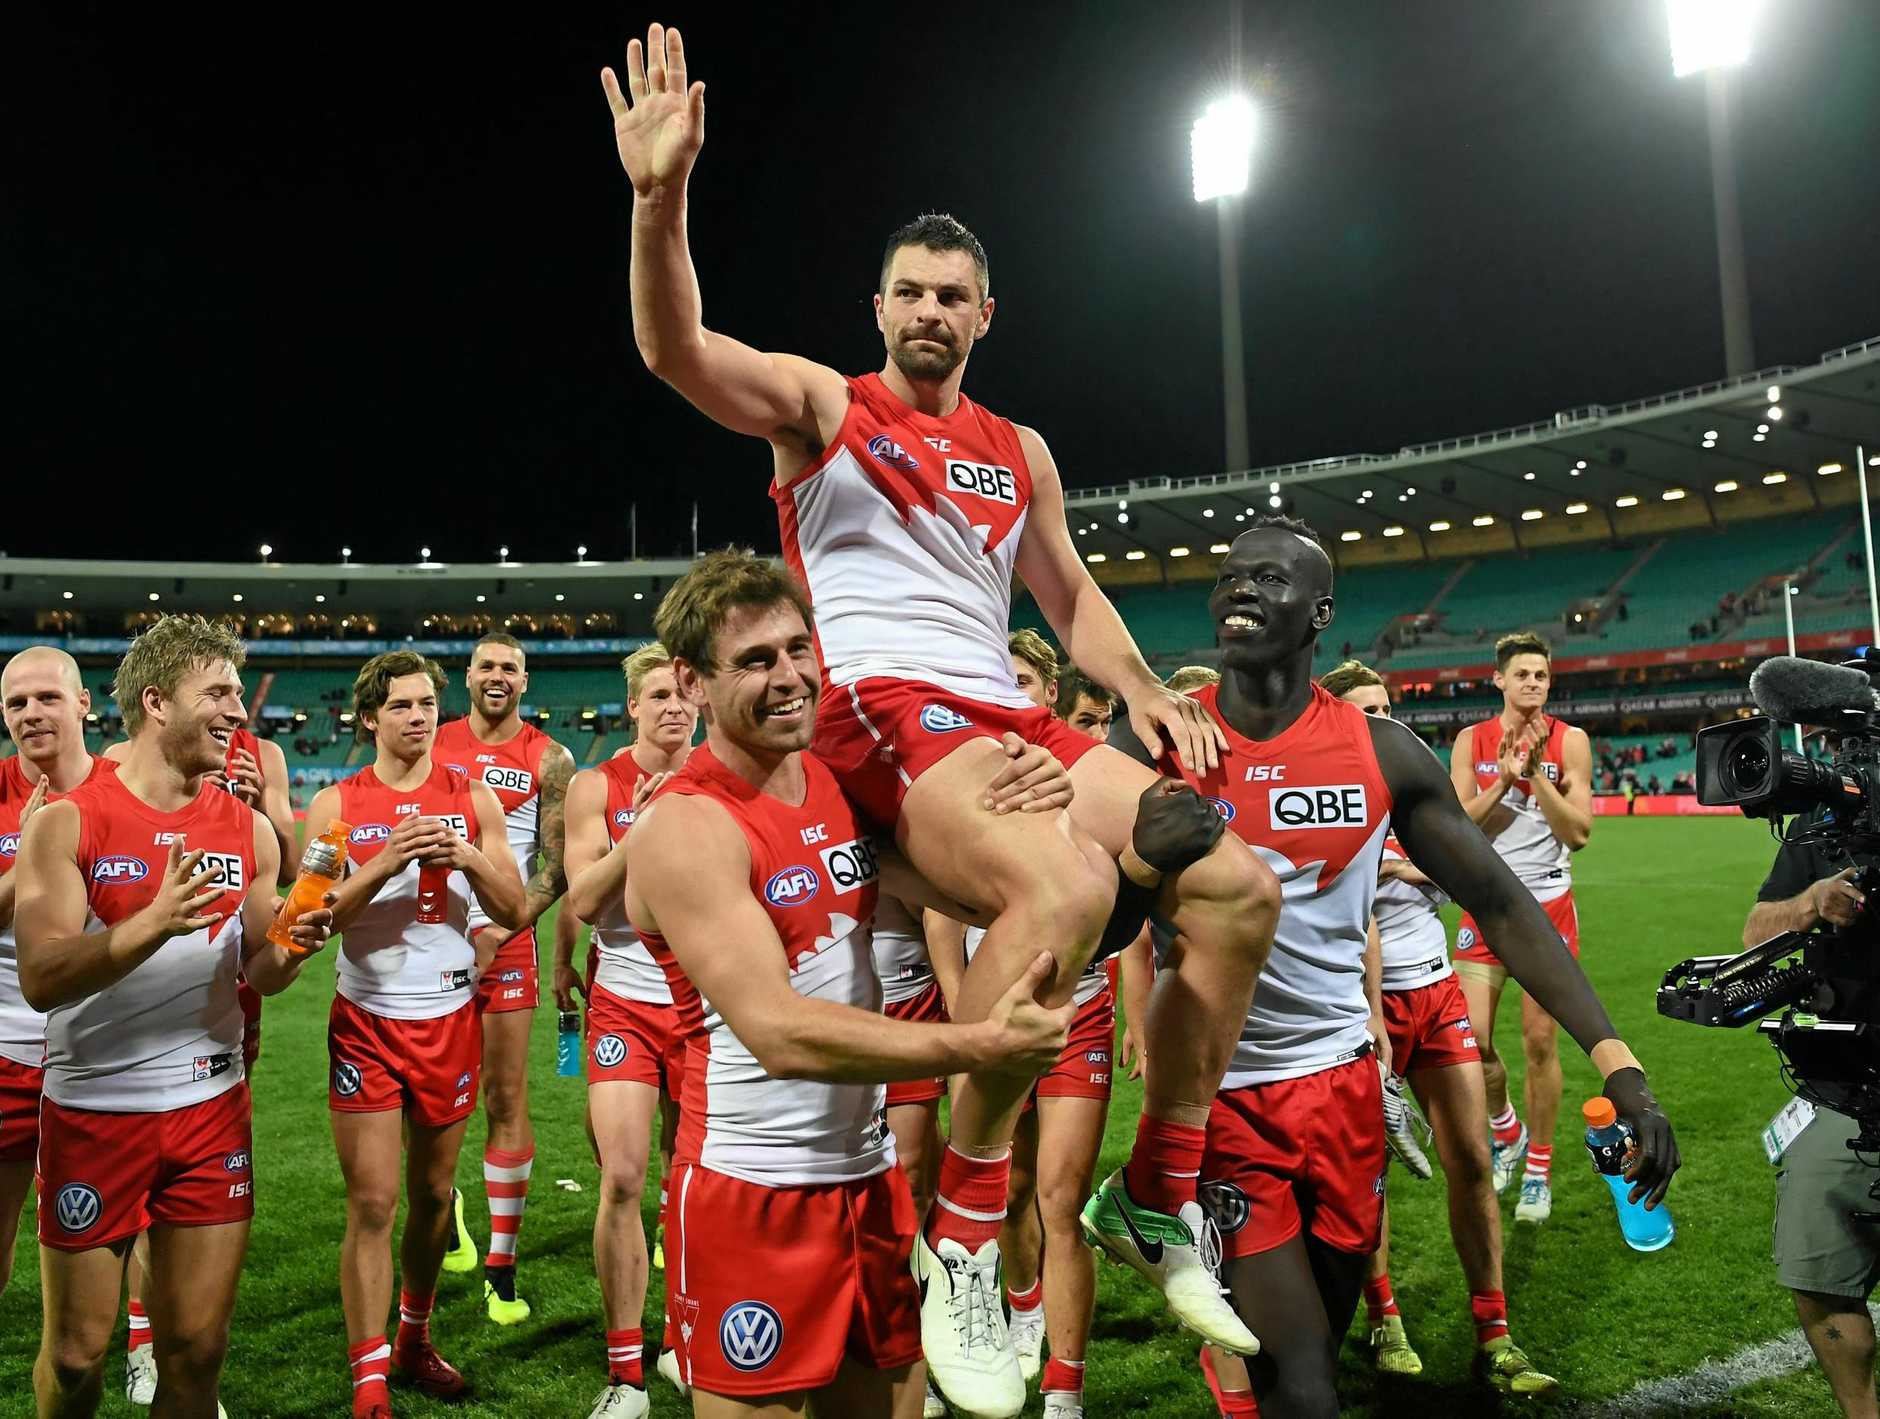 The Swans' Heath Grundy is carried off the ground by his teammates after playing his 250th match on Friday night in Sydney's clasdh with West Coast. Picture: David Moir/AAP